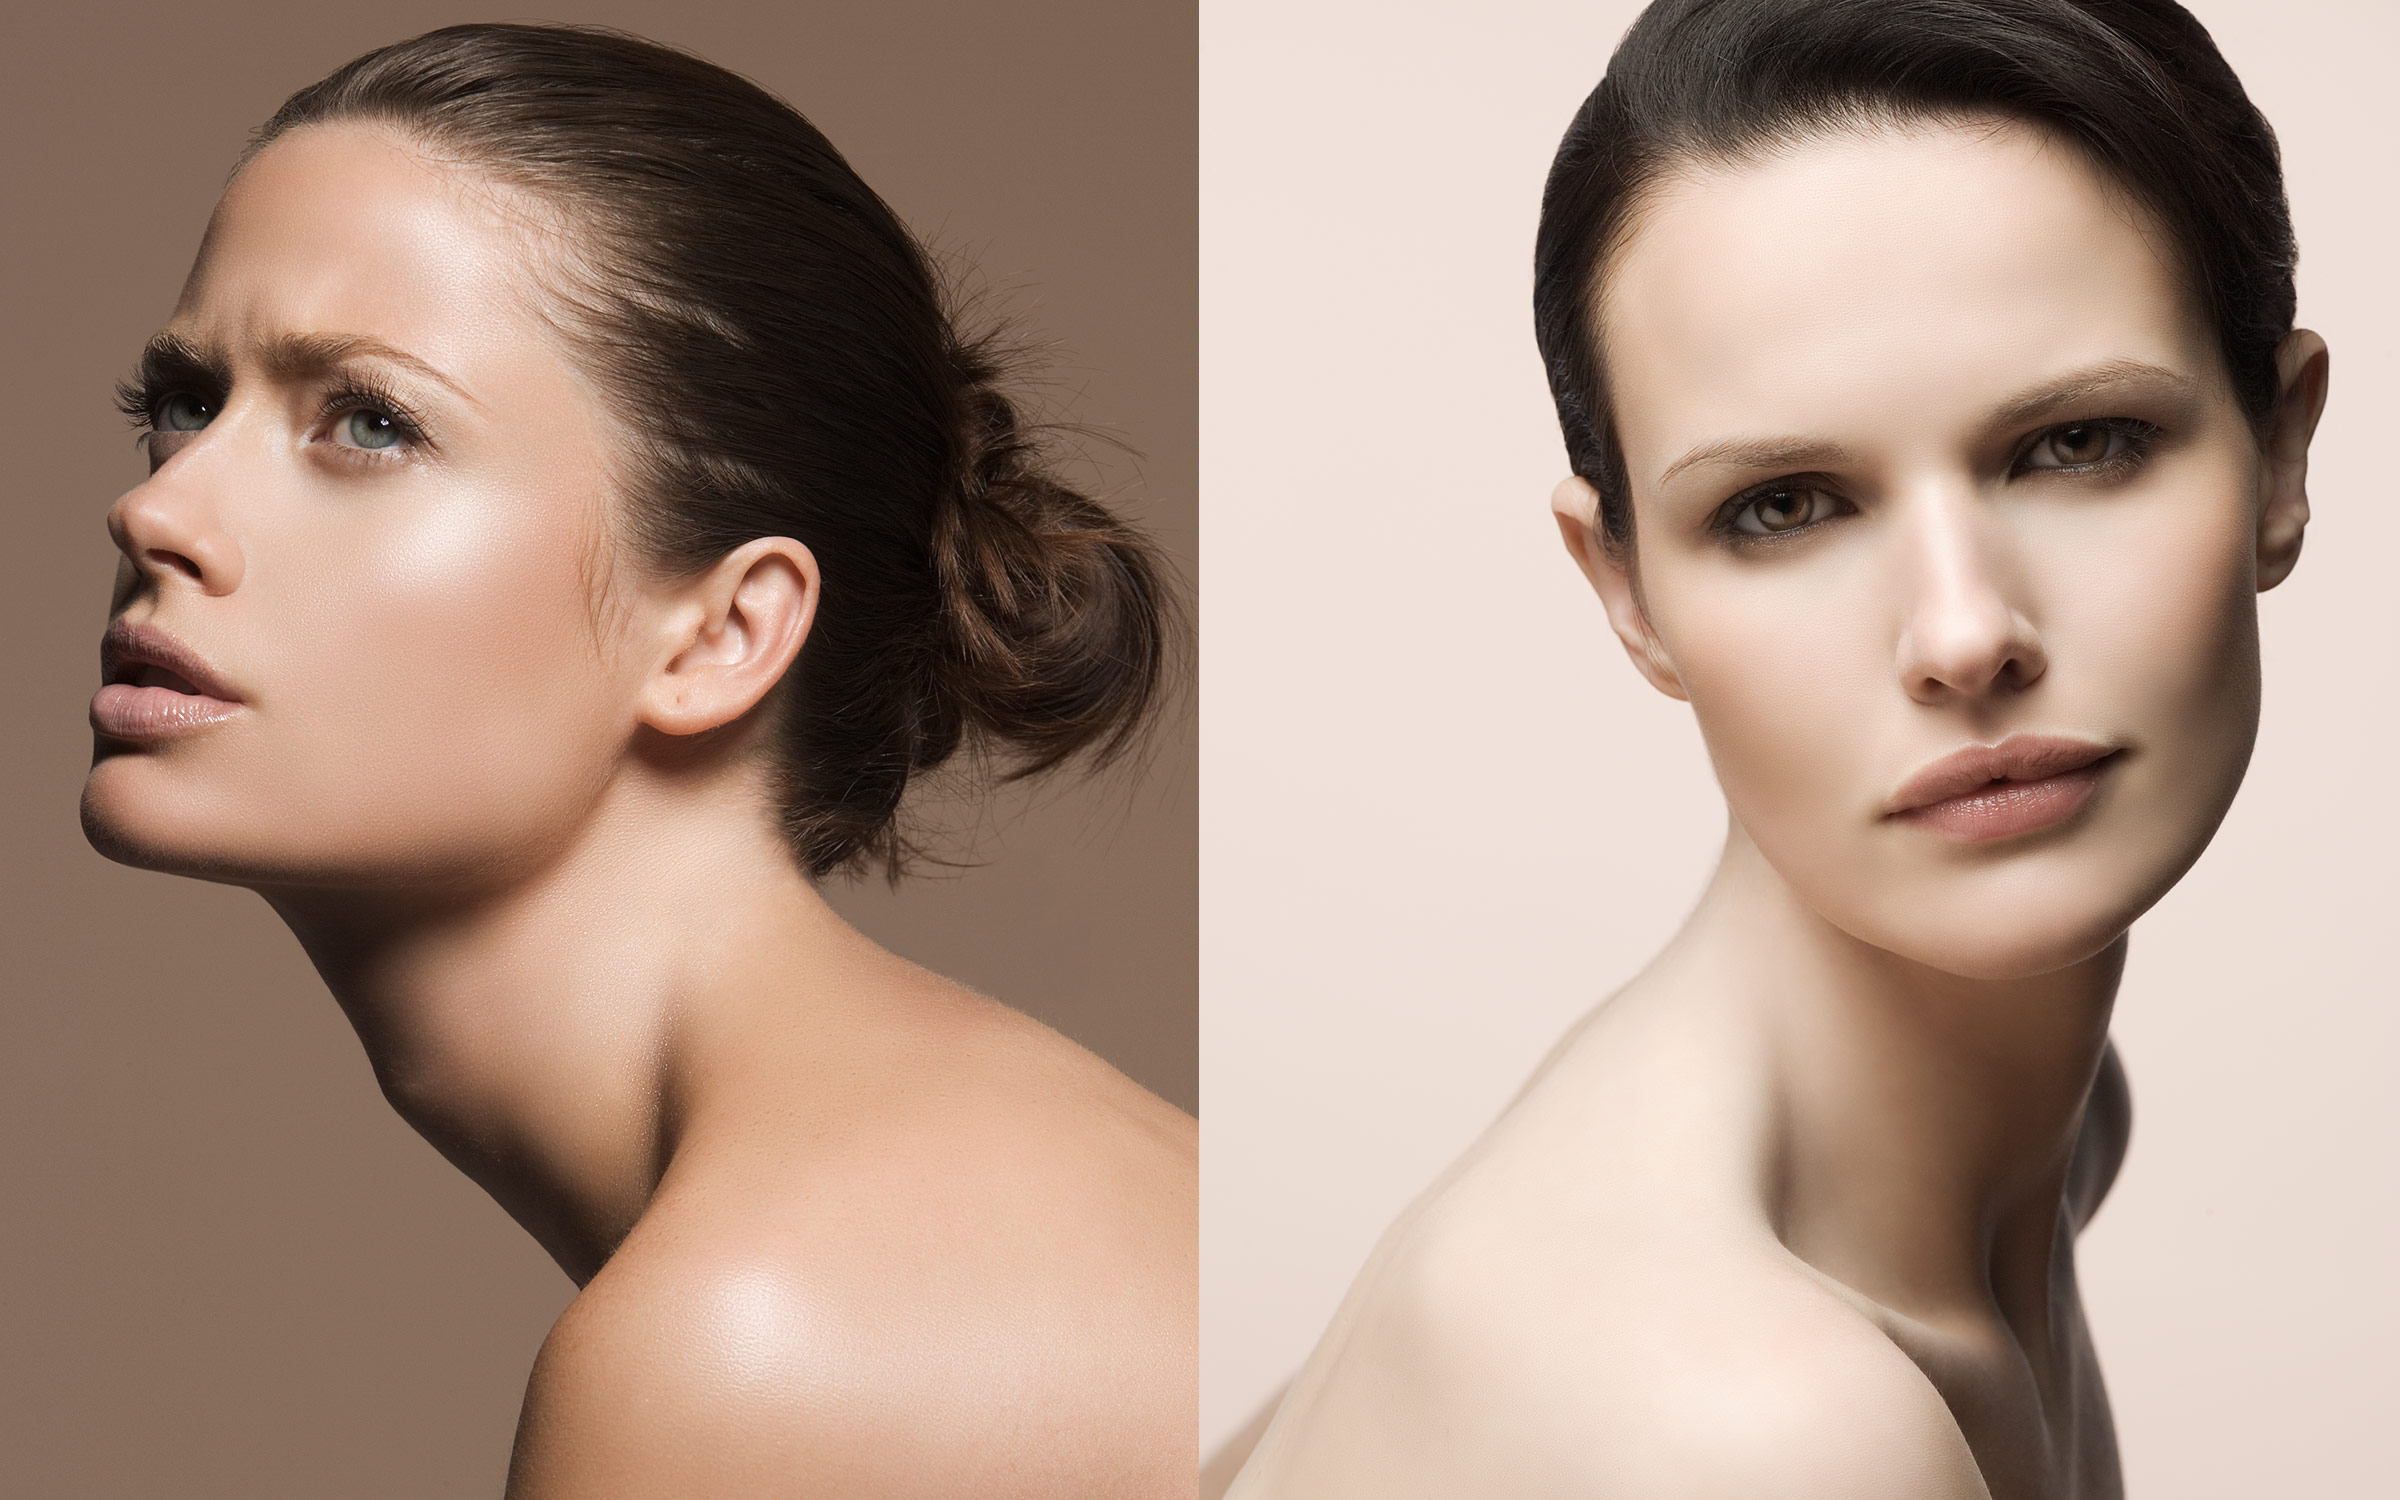 New York Beauty photographer and product photographer